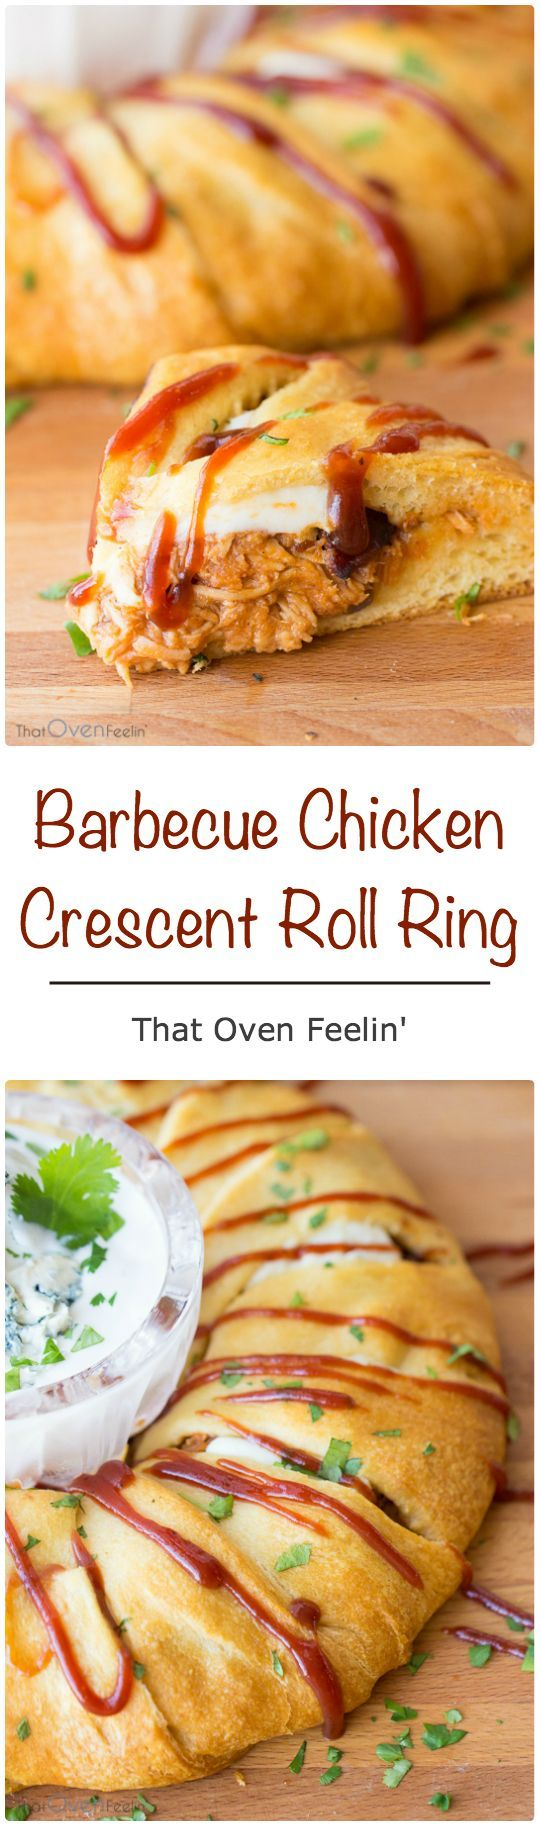 Barbecue Chicken Crescent Roll Ring